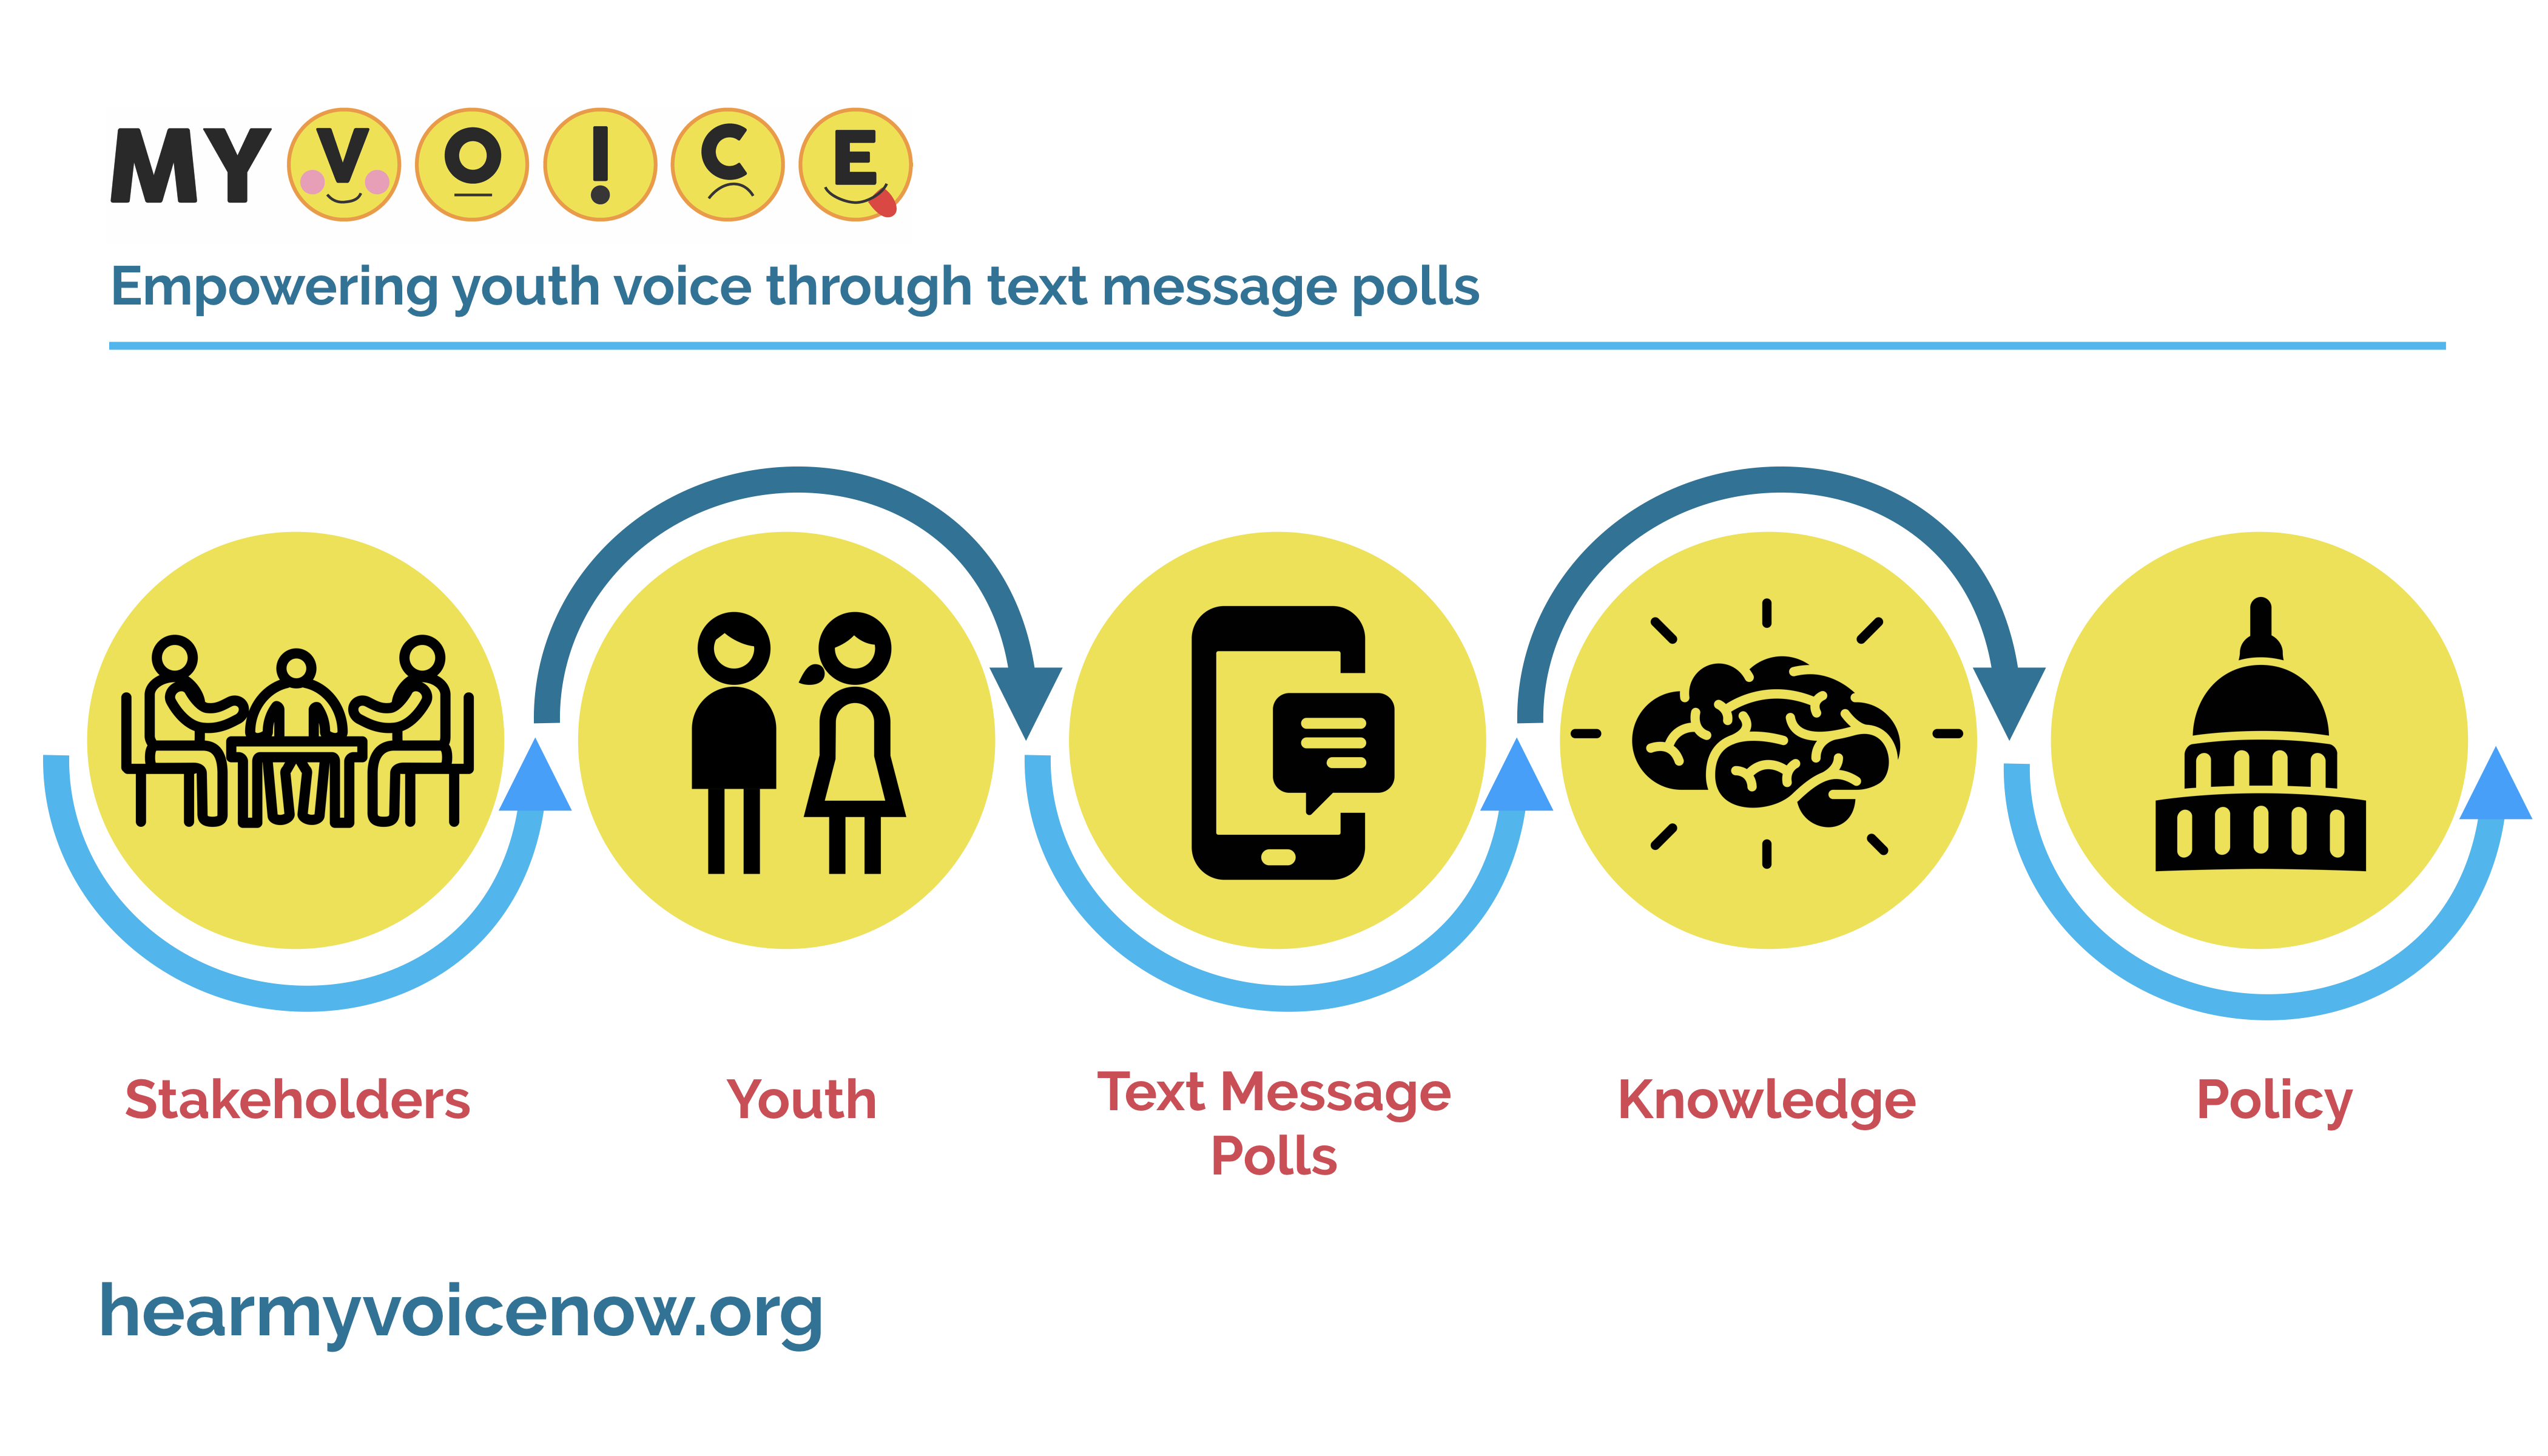 MyVoice conceptual diagram connects stakeholders with youth through text message poll to influence knowledge and policy